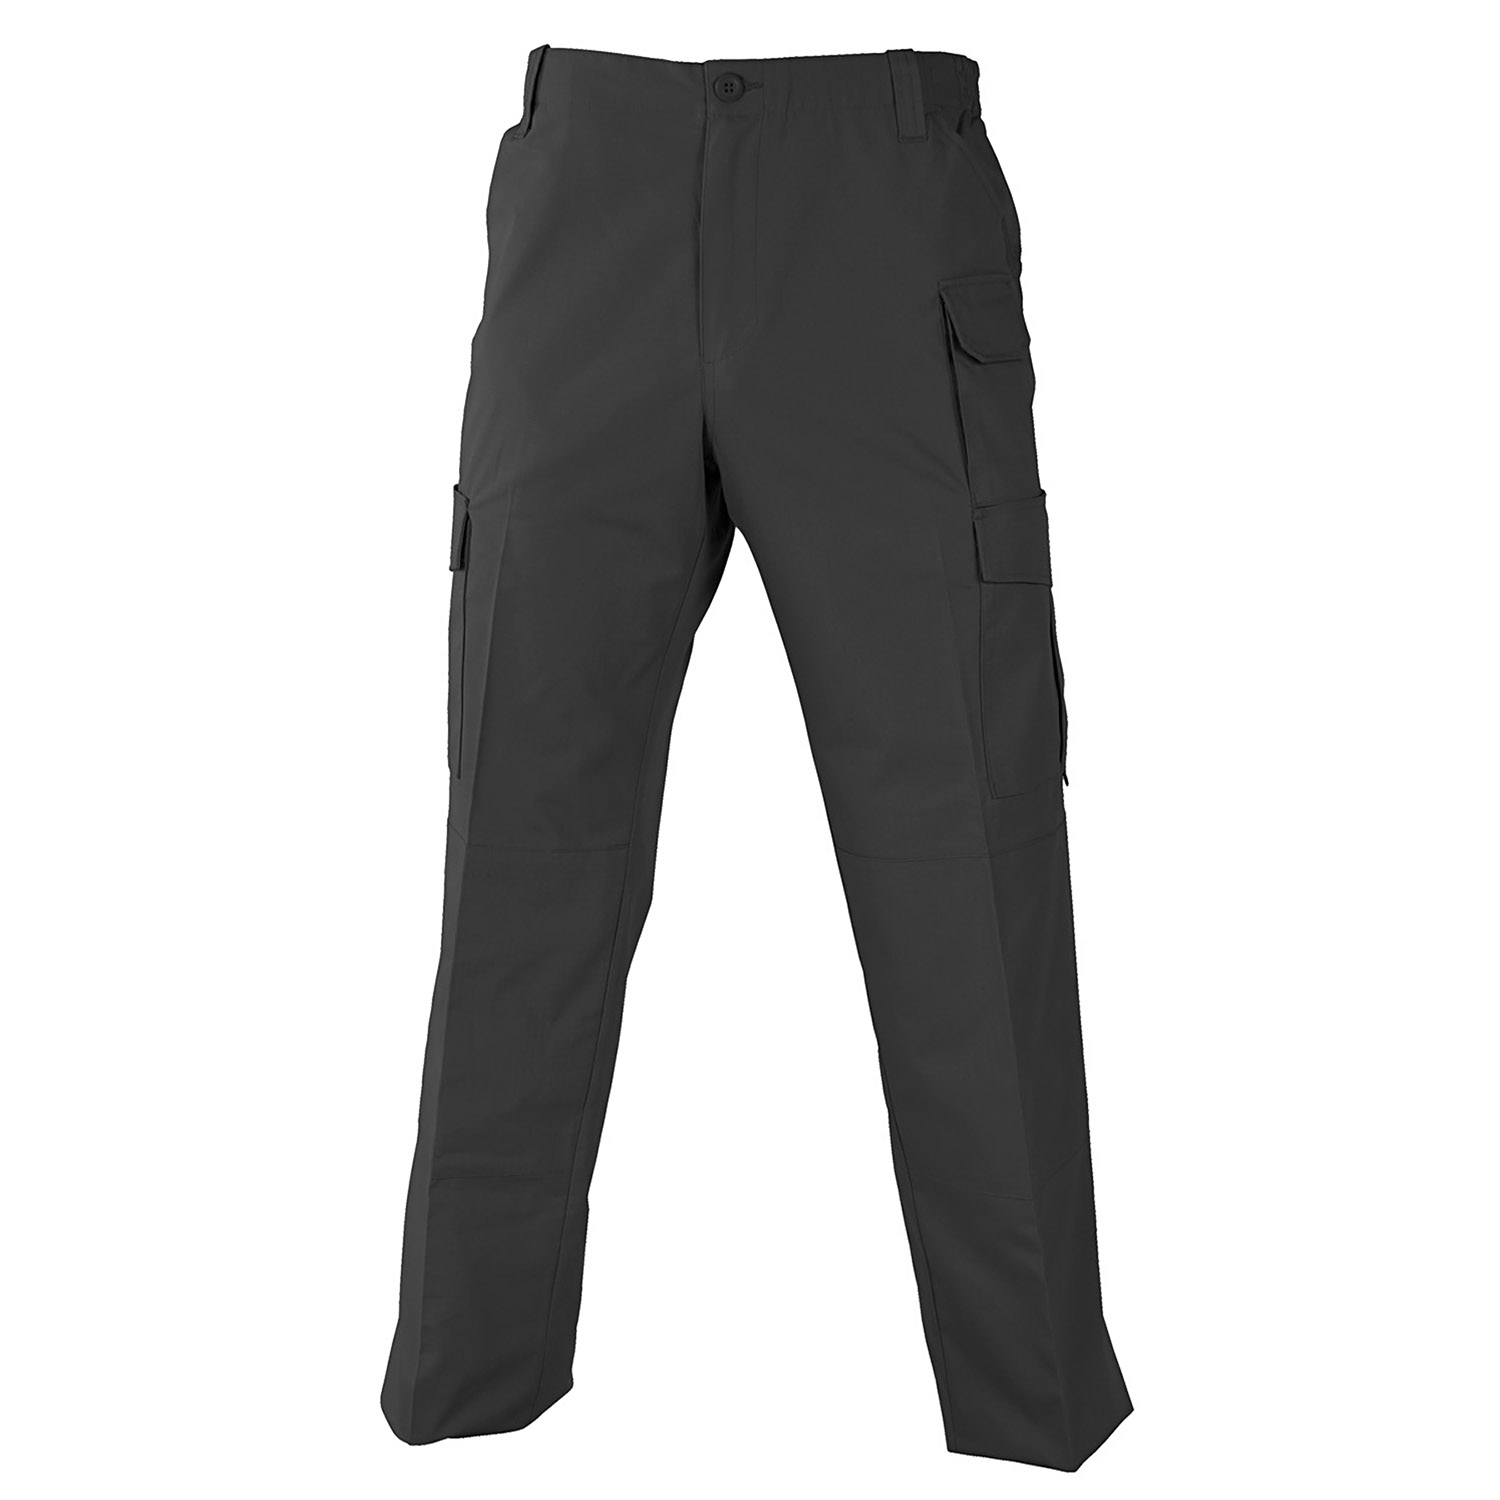 Tactical Pants from 5.11 Tactical, Under Armour and More